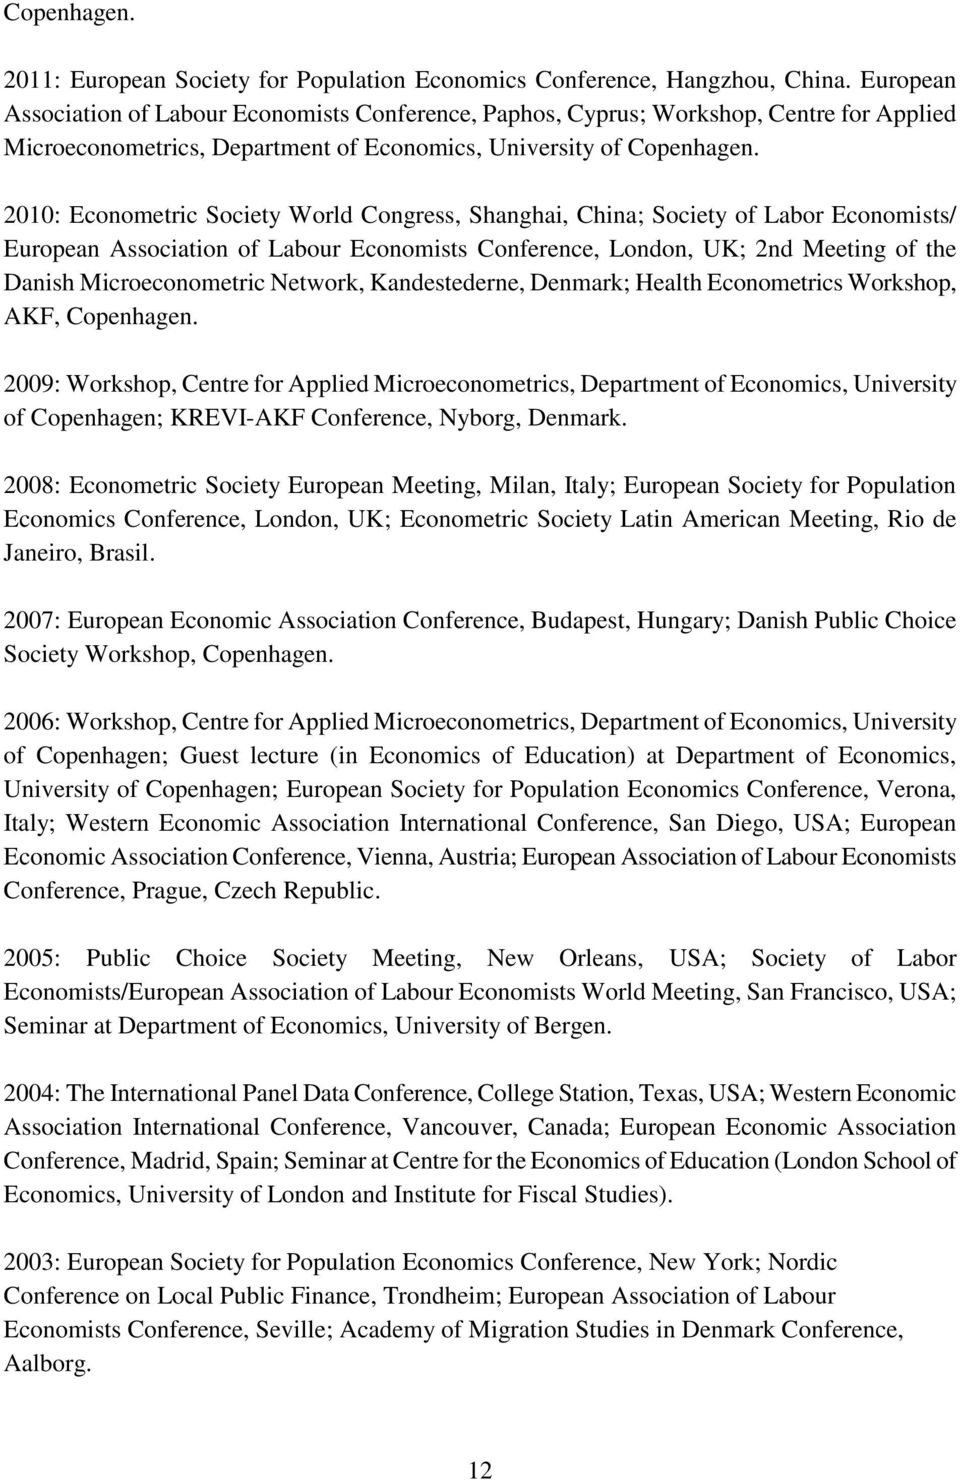 2010: Econometric Society World Congress, Shanghai, China; Society of Labor Economists/ European Association of Labour Economists Conference, London, UK; 2nd Meeting of the Danish Microeconometric